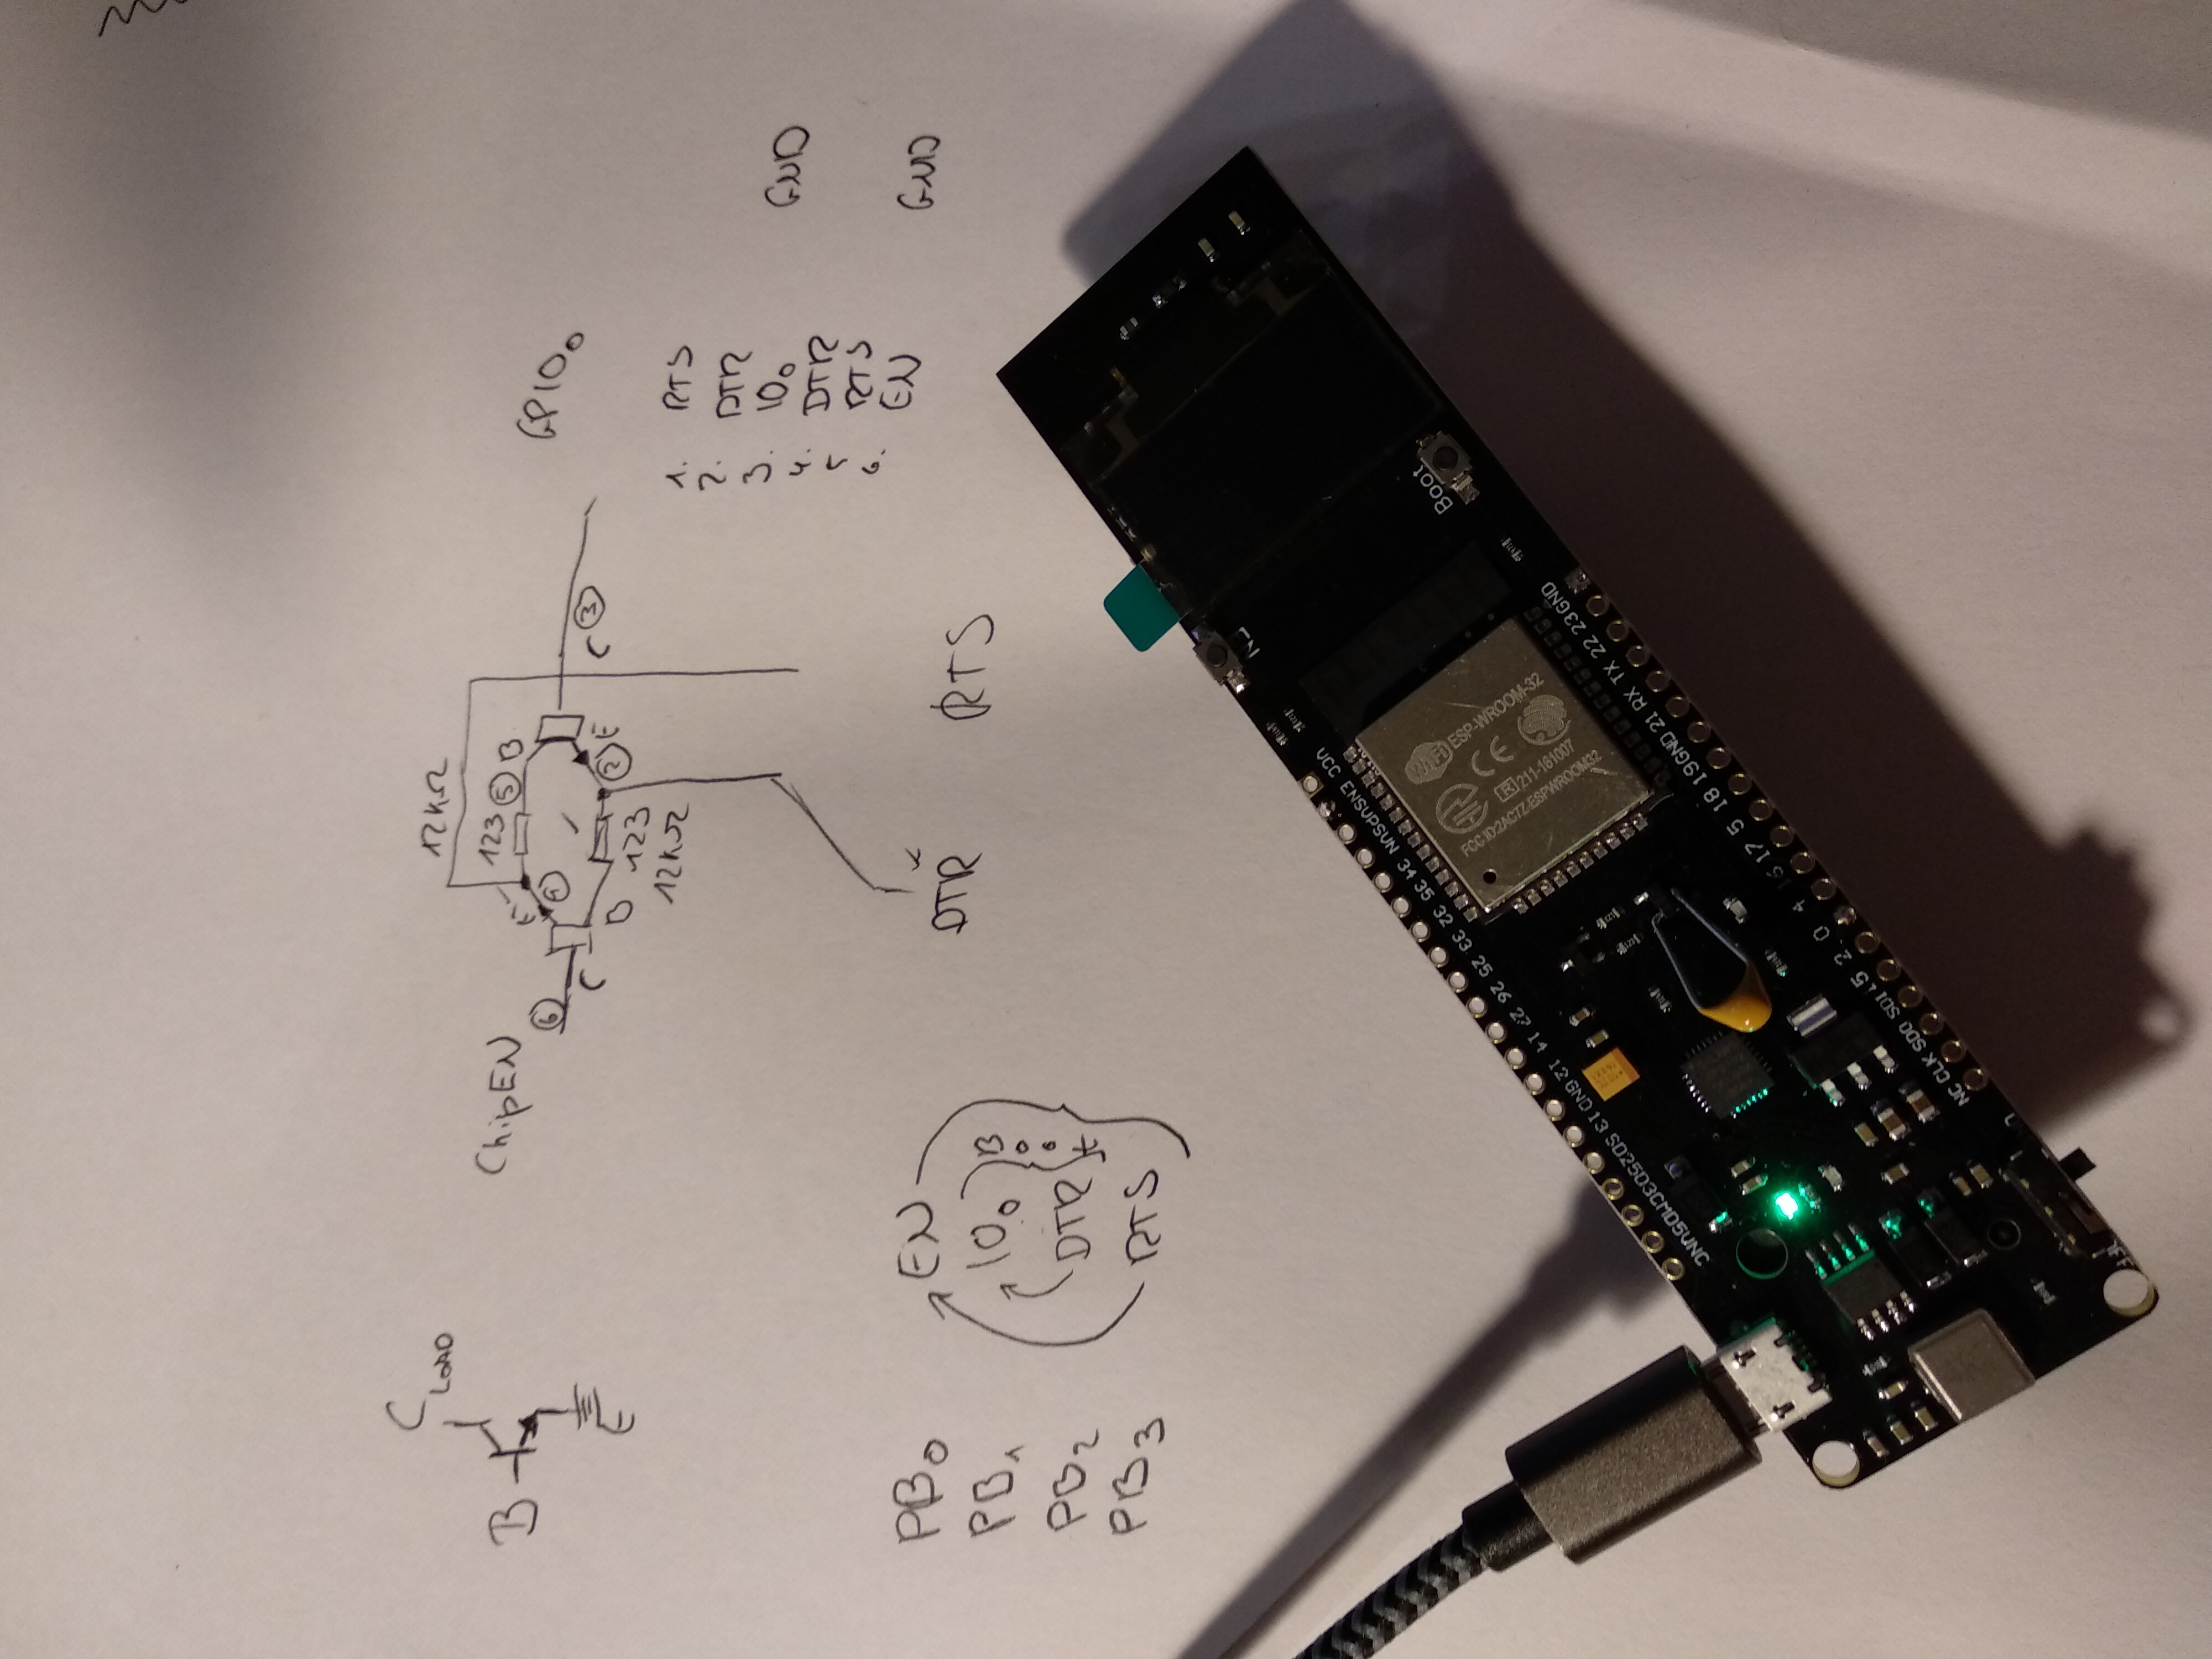 A Fatal Error Occurred Failed To Connect Esp32 Timed Out Dell Studio 1700 Wiring Diagram Img 20181026 213705